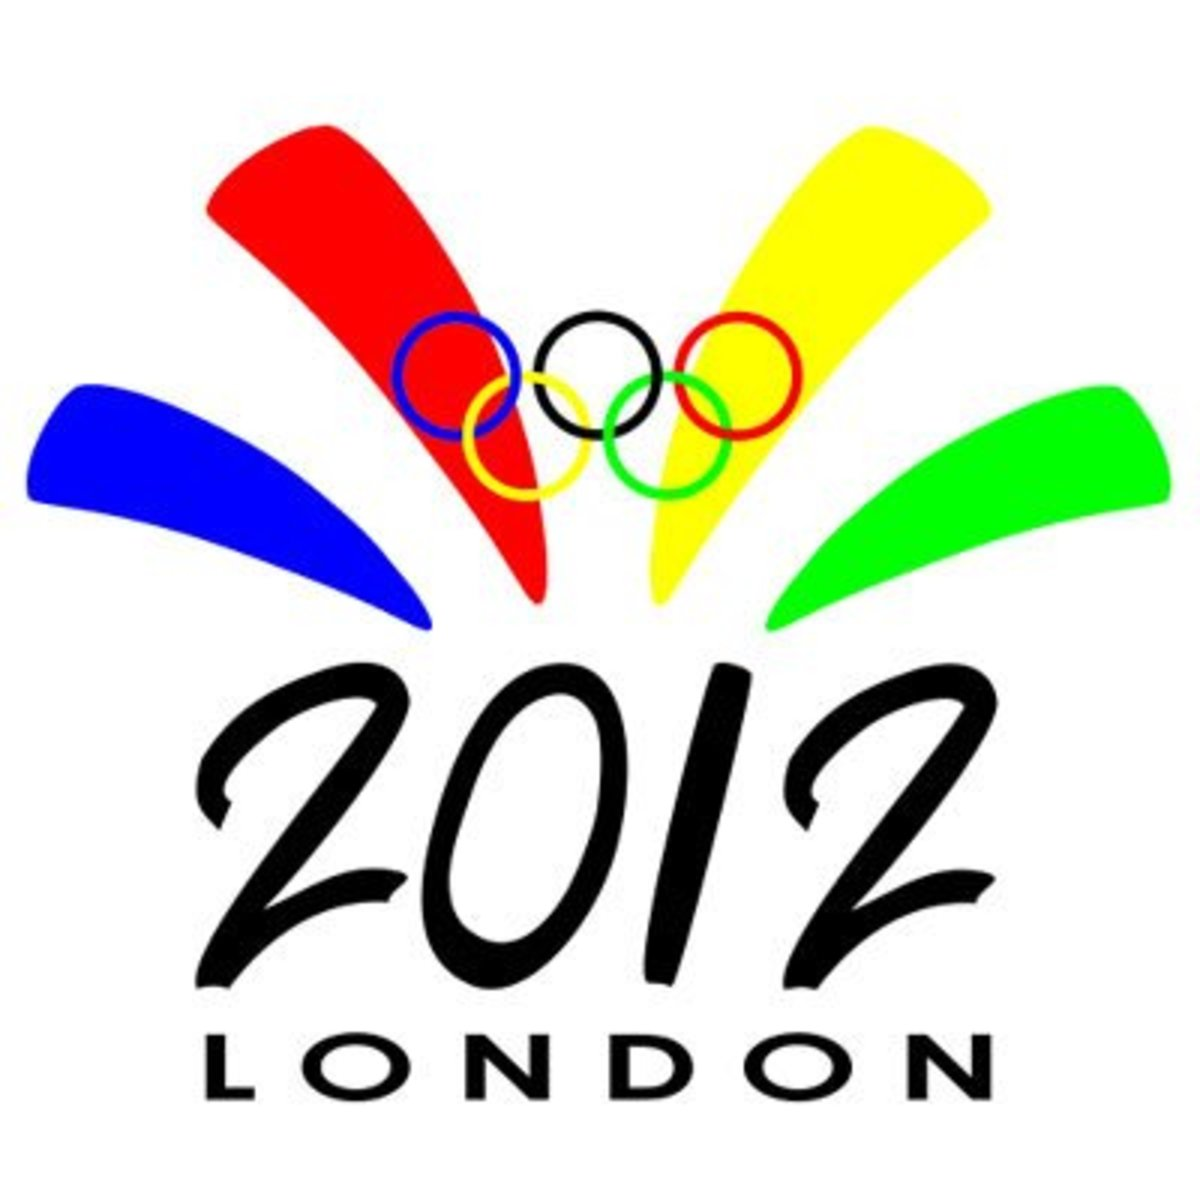 Salute your Country's Flag, name and Team in the London Olympics 2012